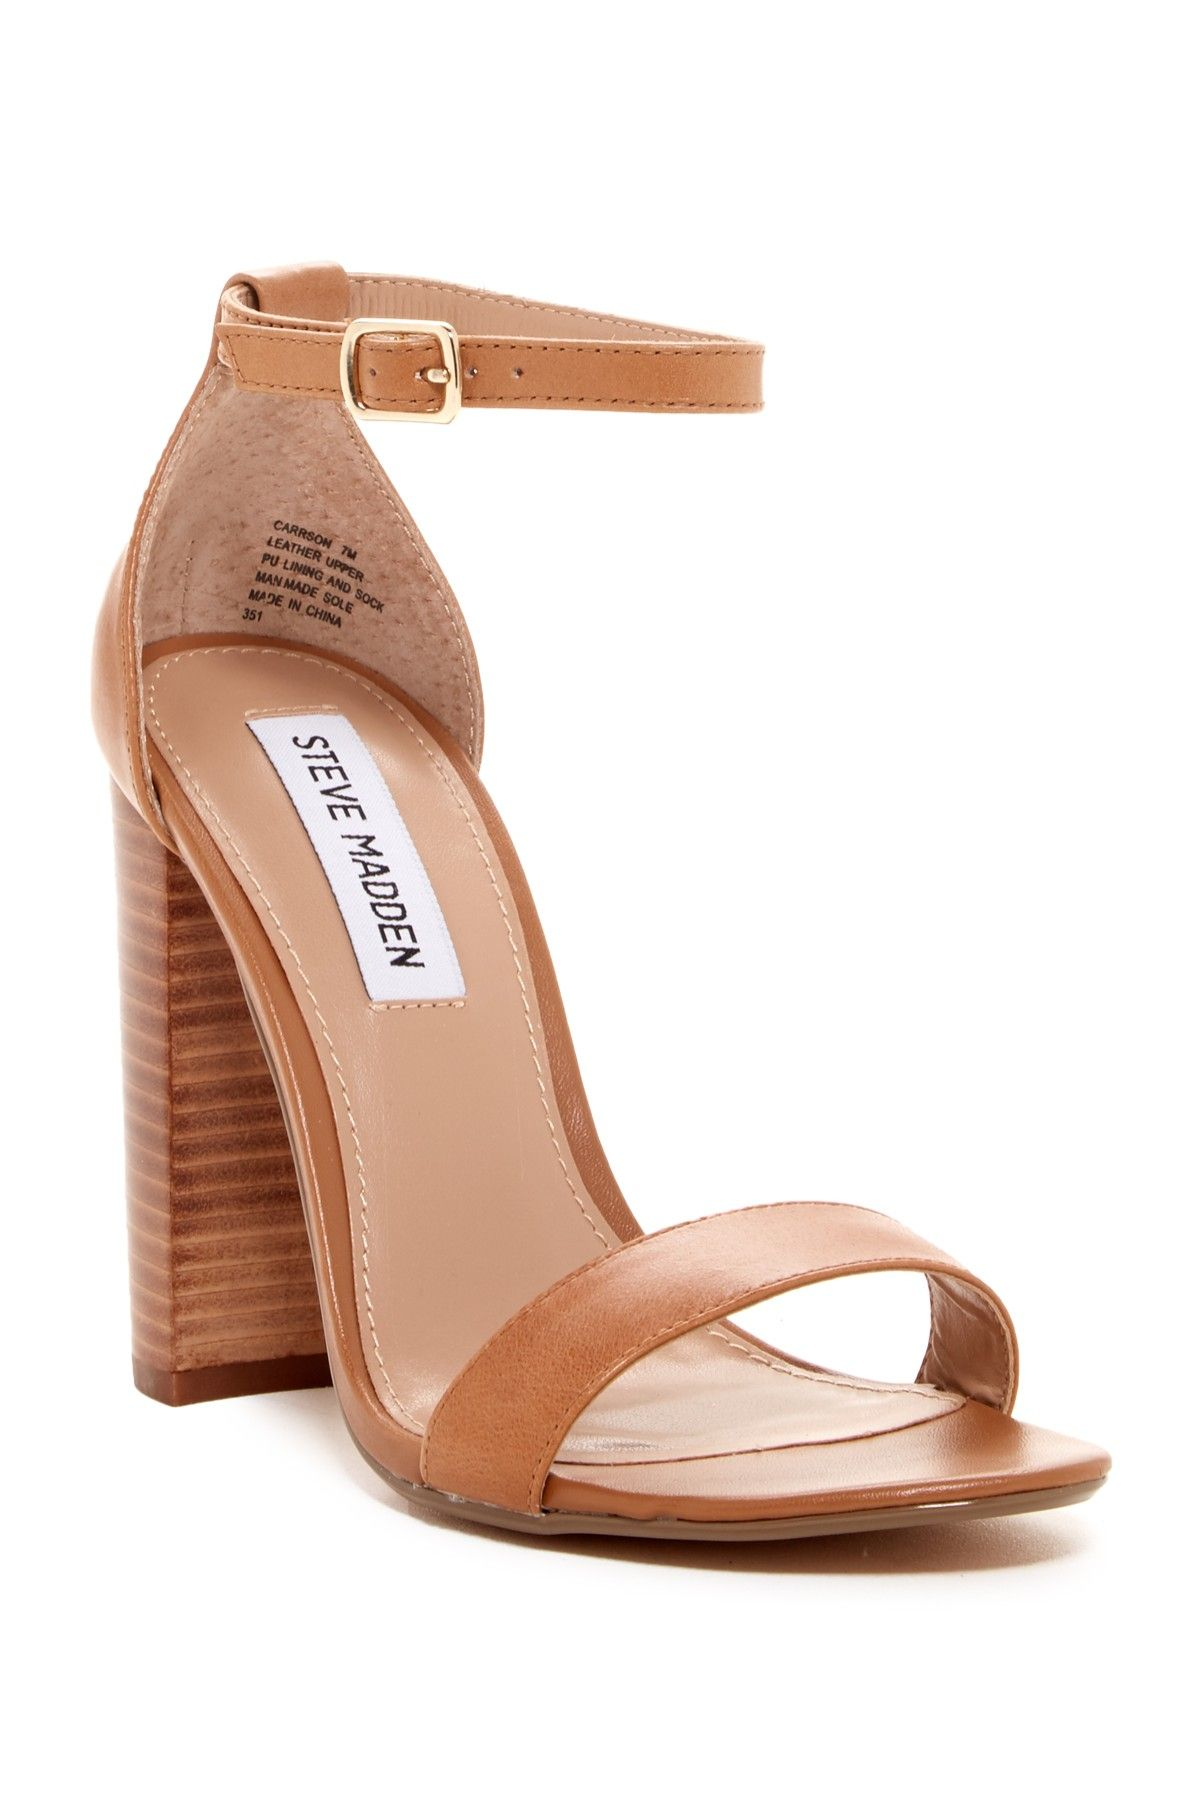 dbbb5c09b5d An elegant pair of Steve Madden sandals that will go with any work outfit